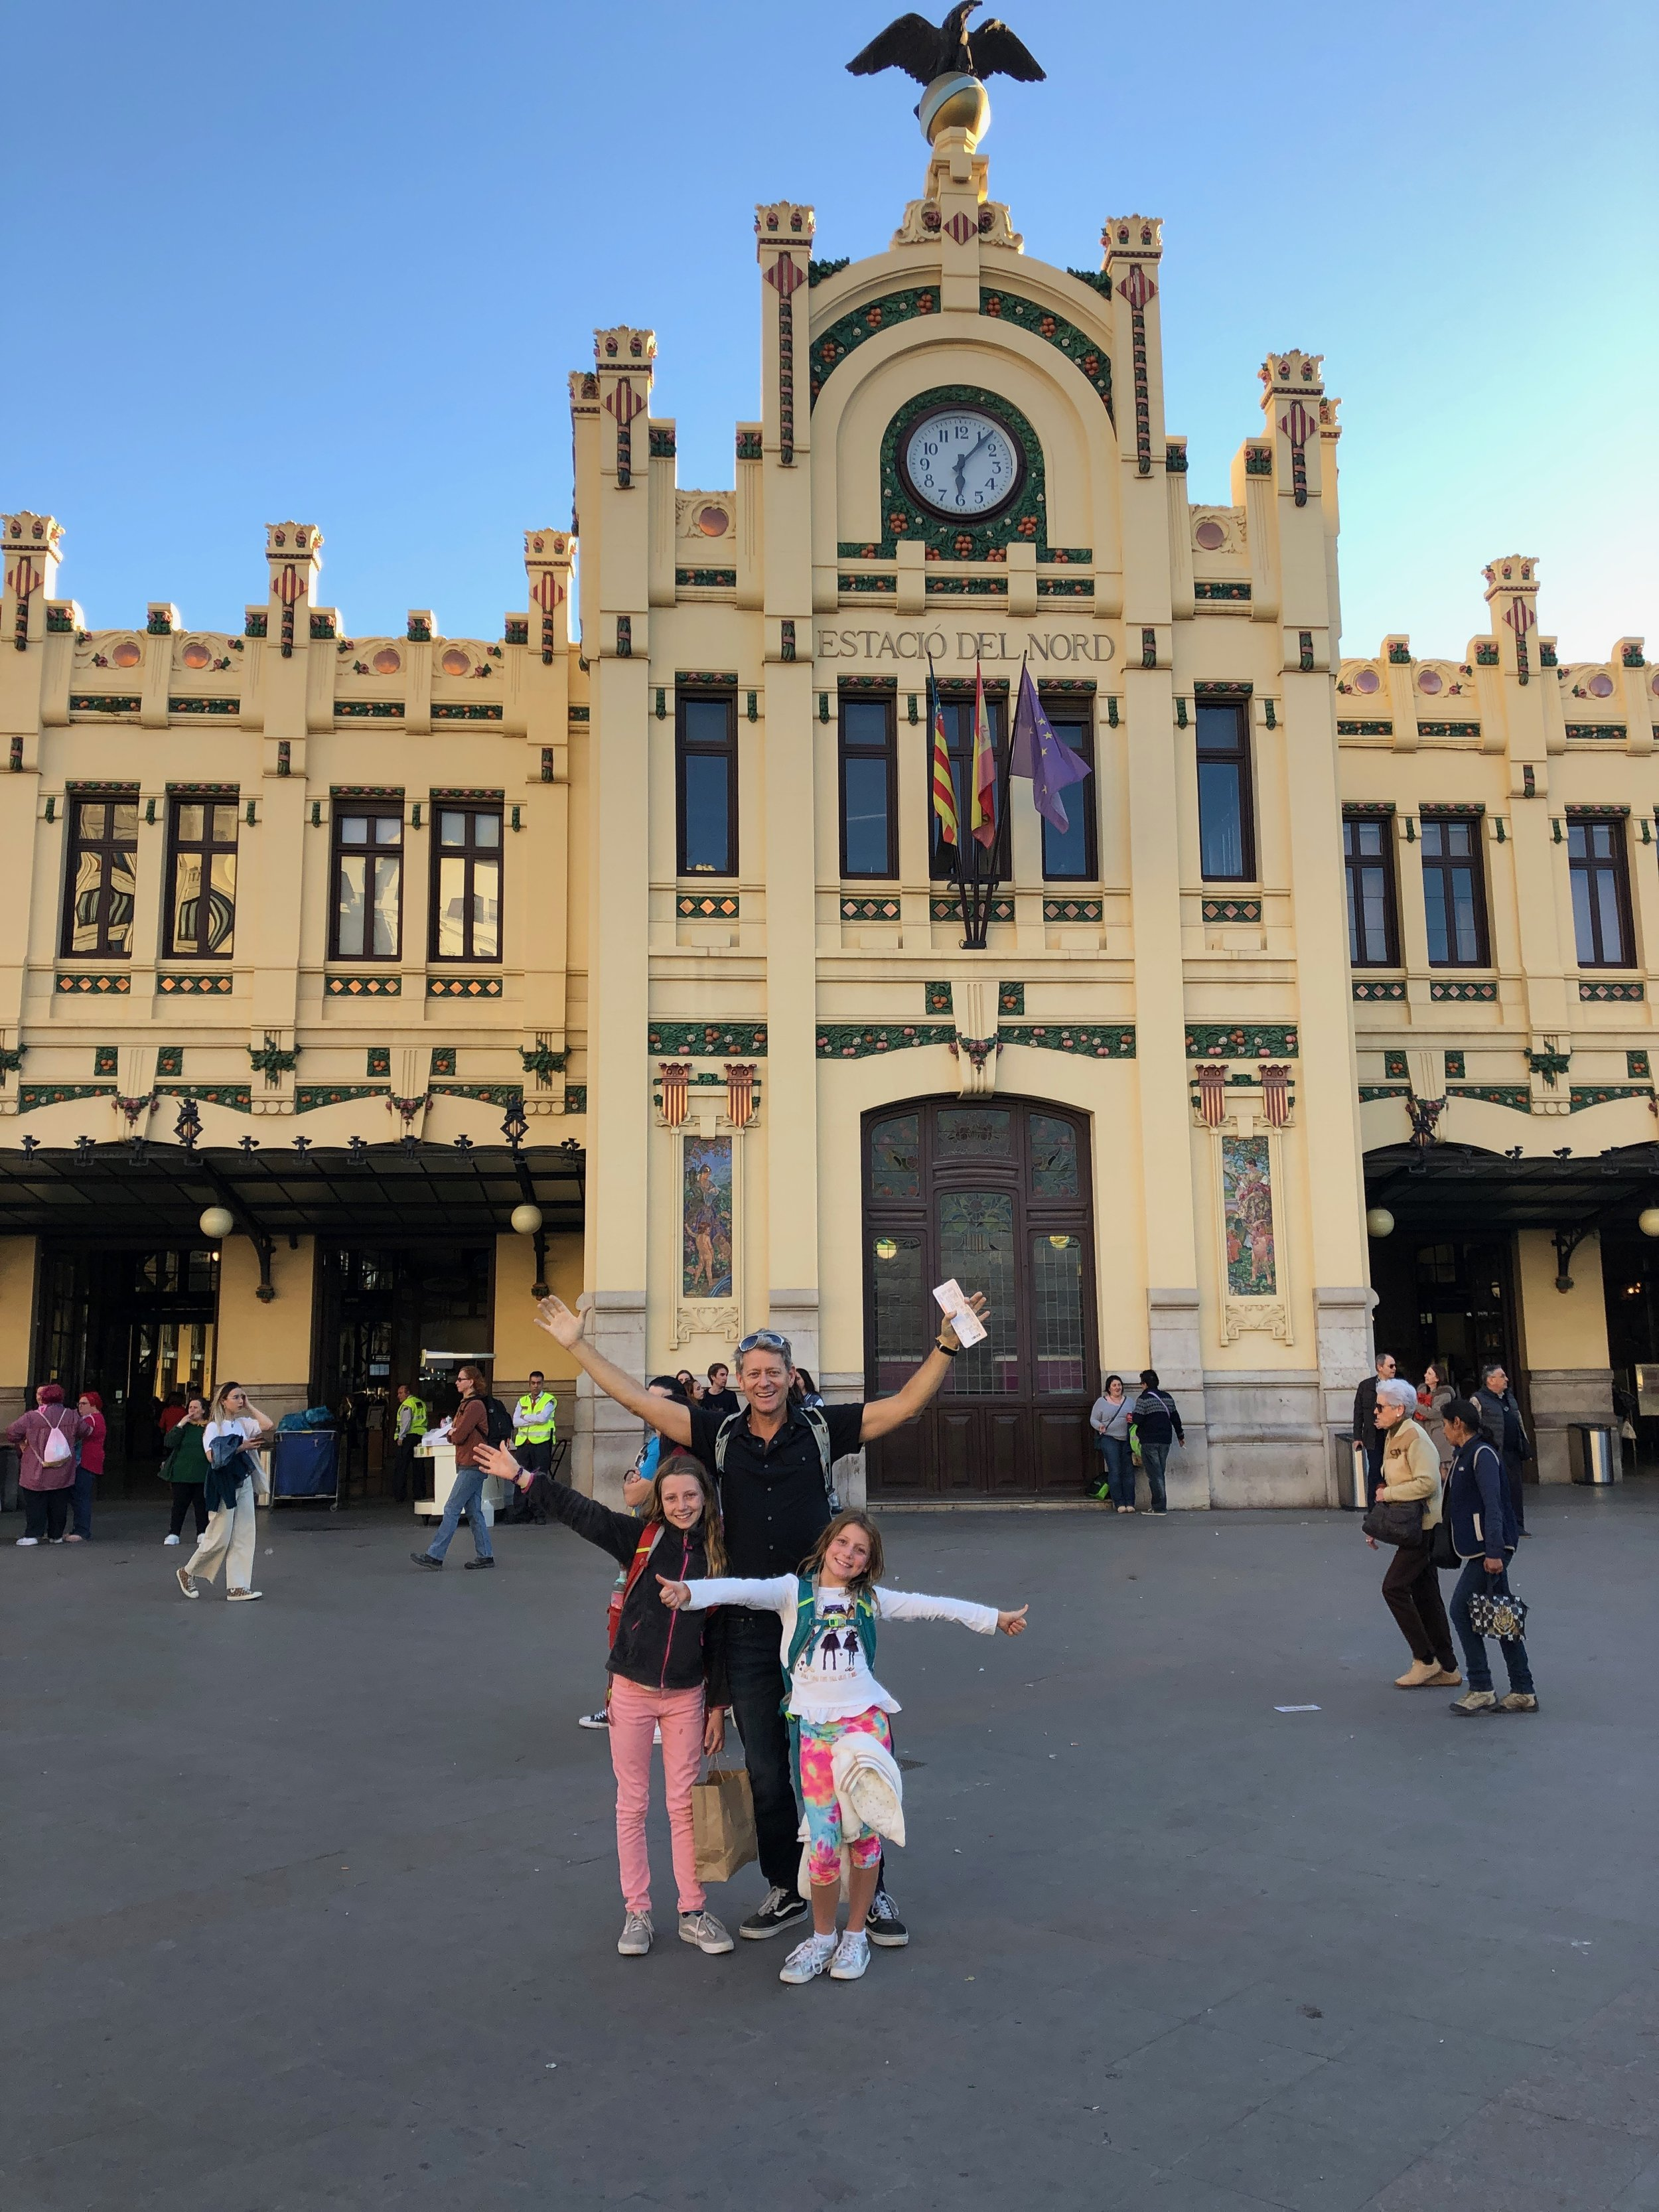 Getting ready to leave Valencia. We're in front of the train station